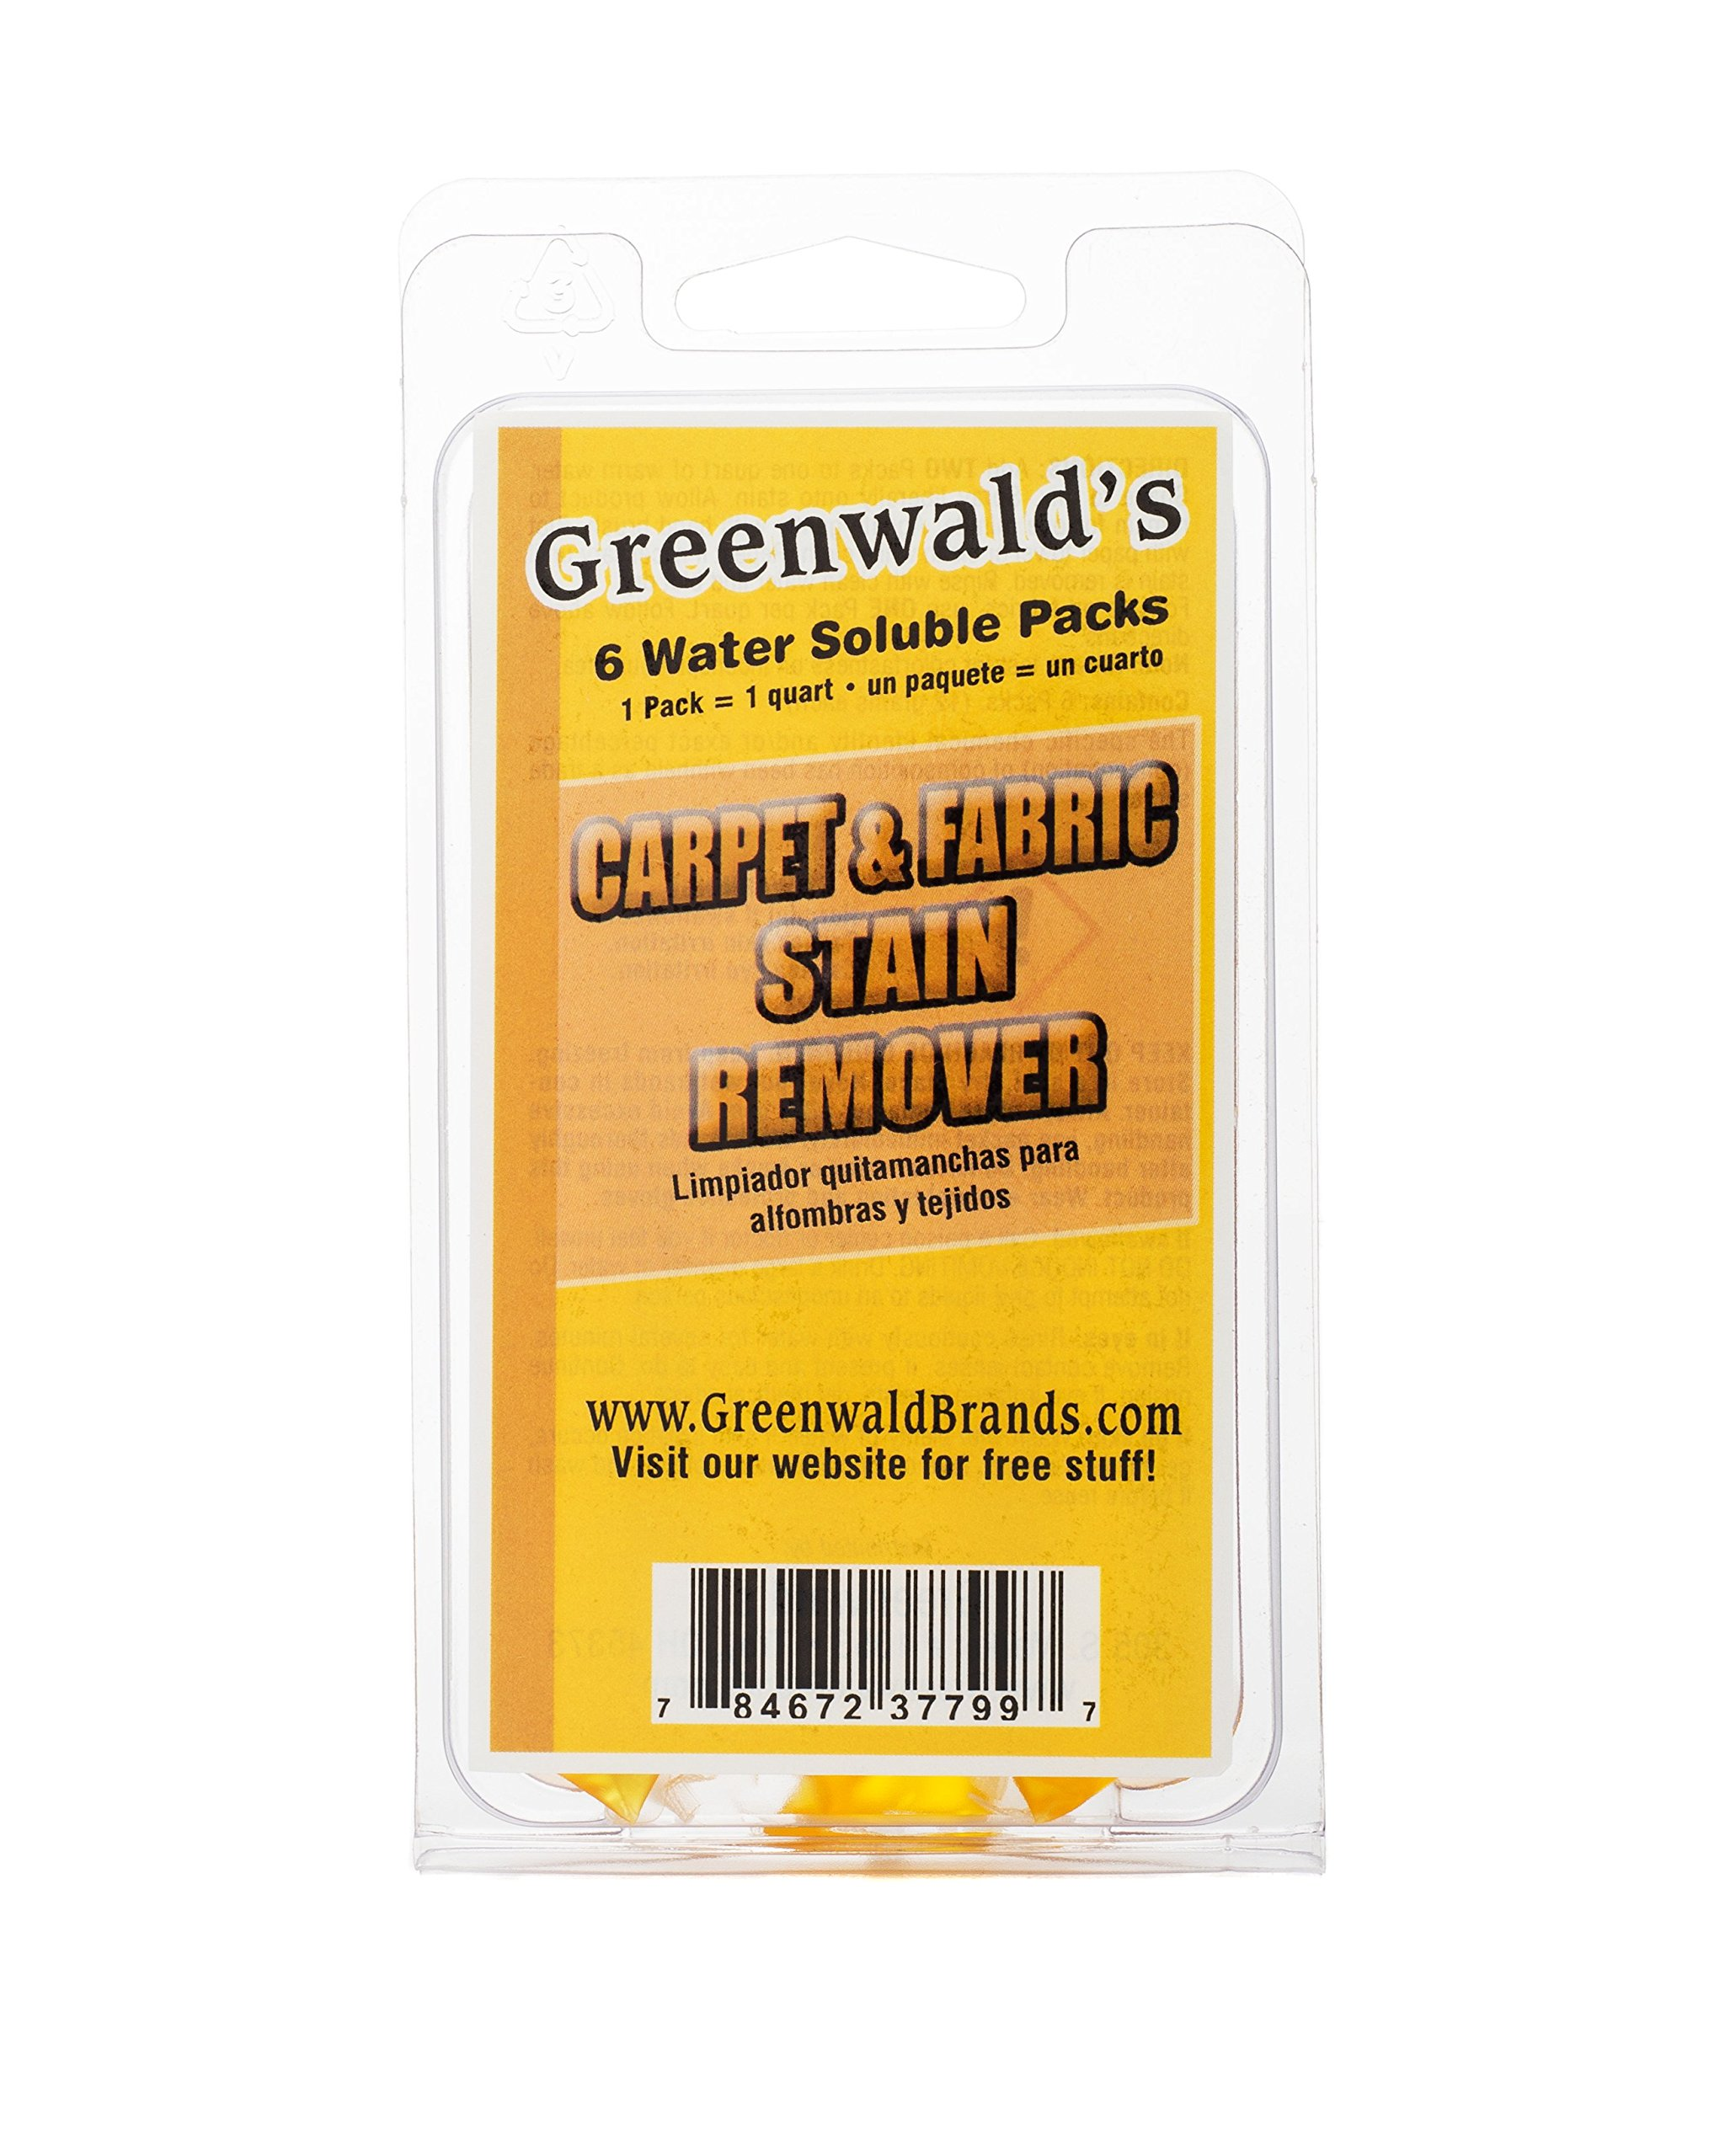 Greenwalds Carpet, Upholstery & Fabric Stain Remover - Easy Refills Make 6 32-oz